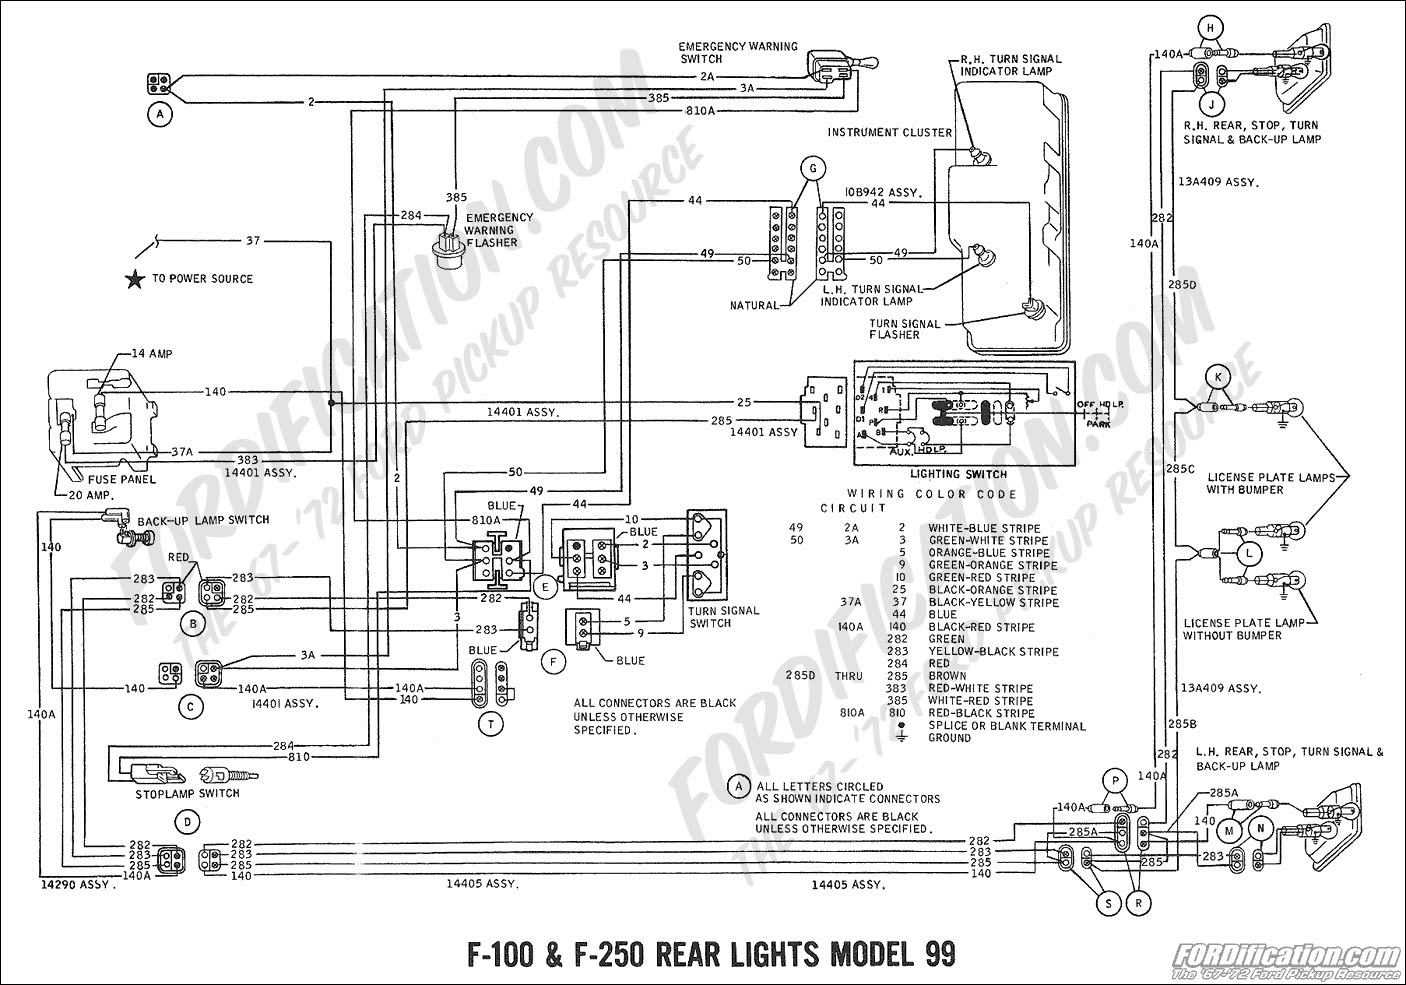 Ibanez Gsr Series Wiring Diagram